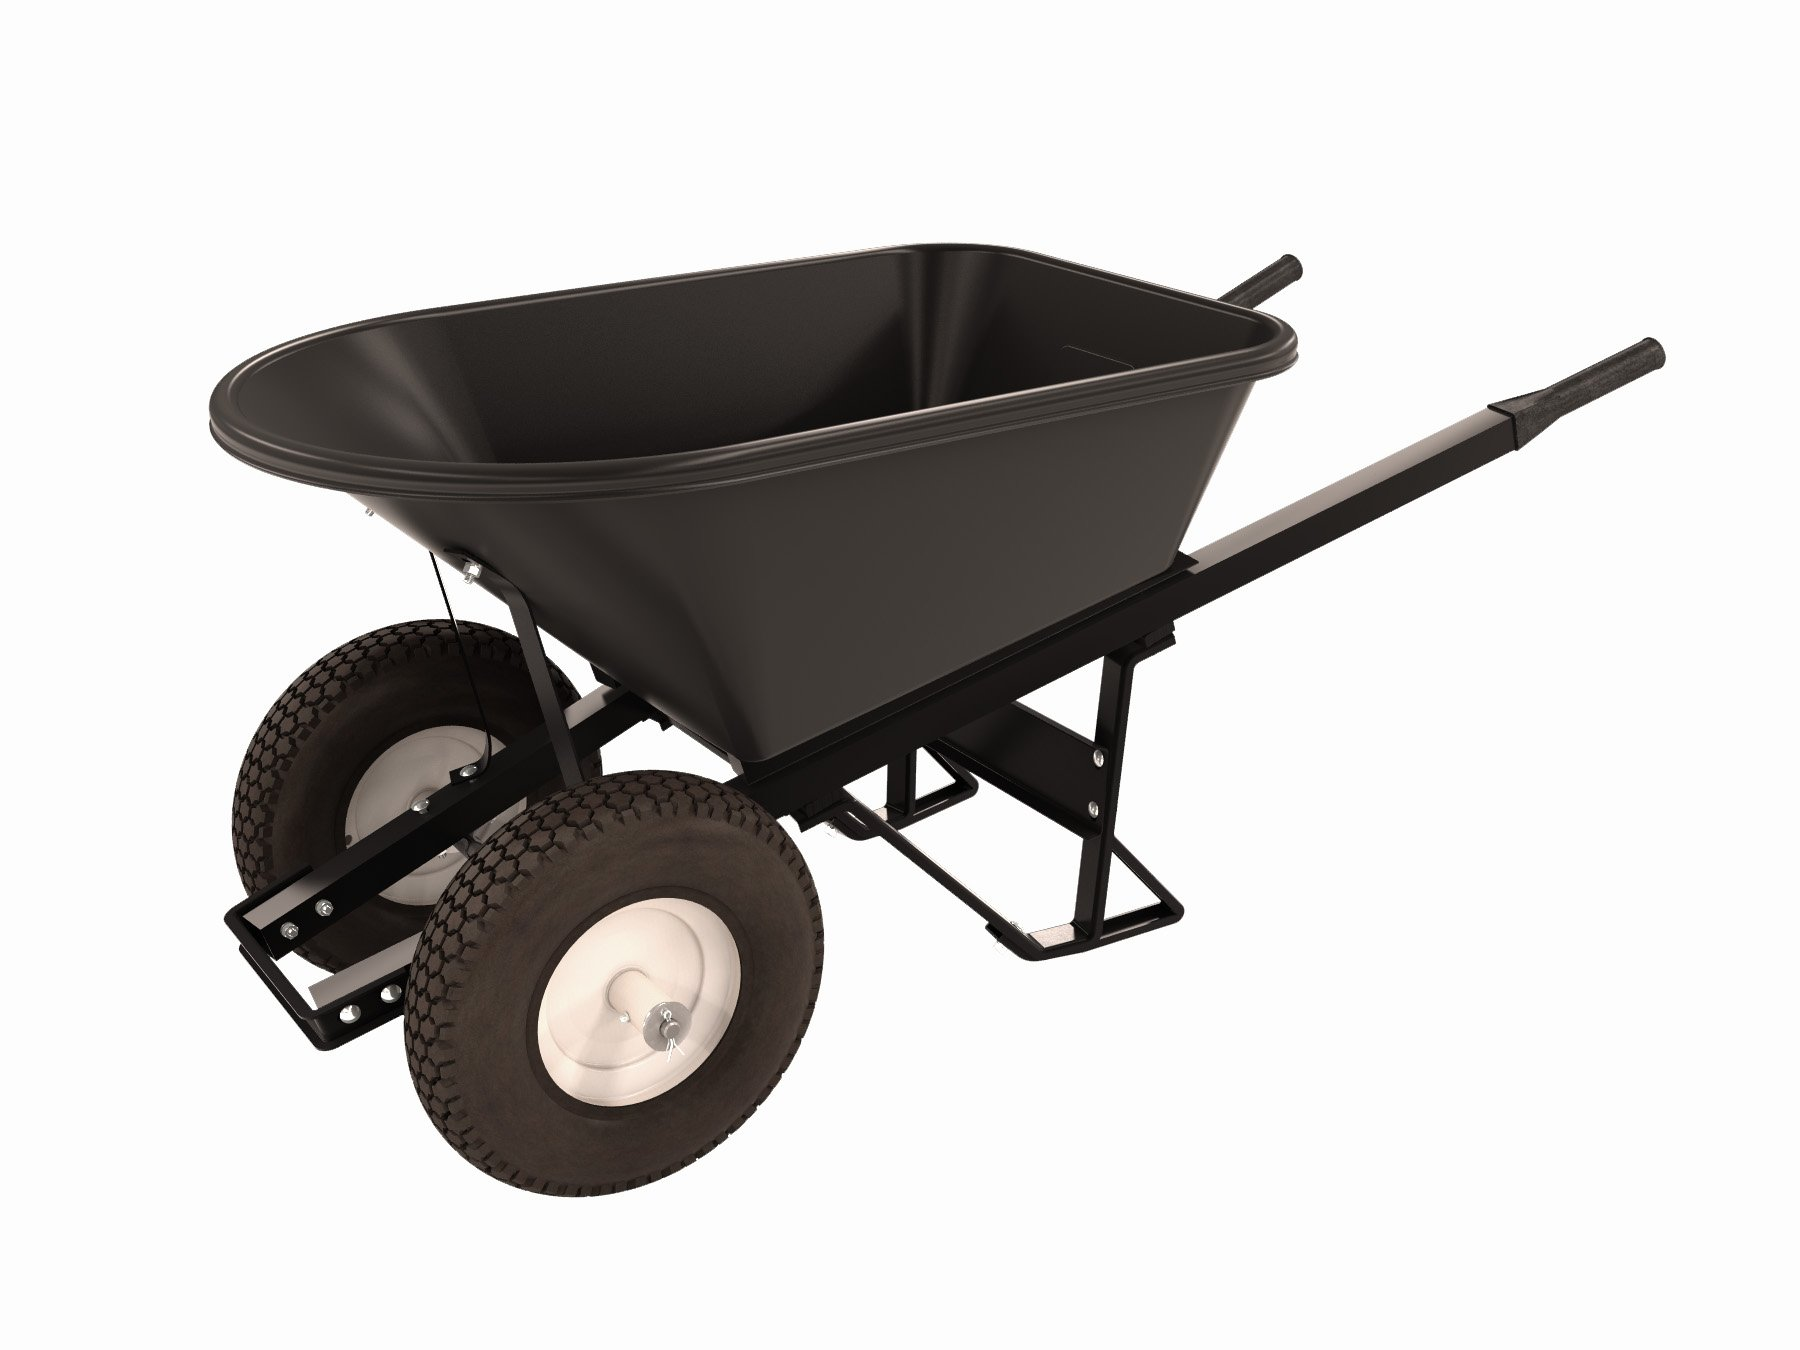 Bon 28 907 Premium Contractor Grade Poly-Tray Double Wheel Wheelbarrow with Steel Hande and Knobby Tire, 5-3/4 Cubic Feet